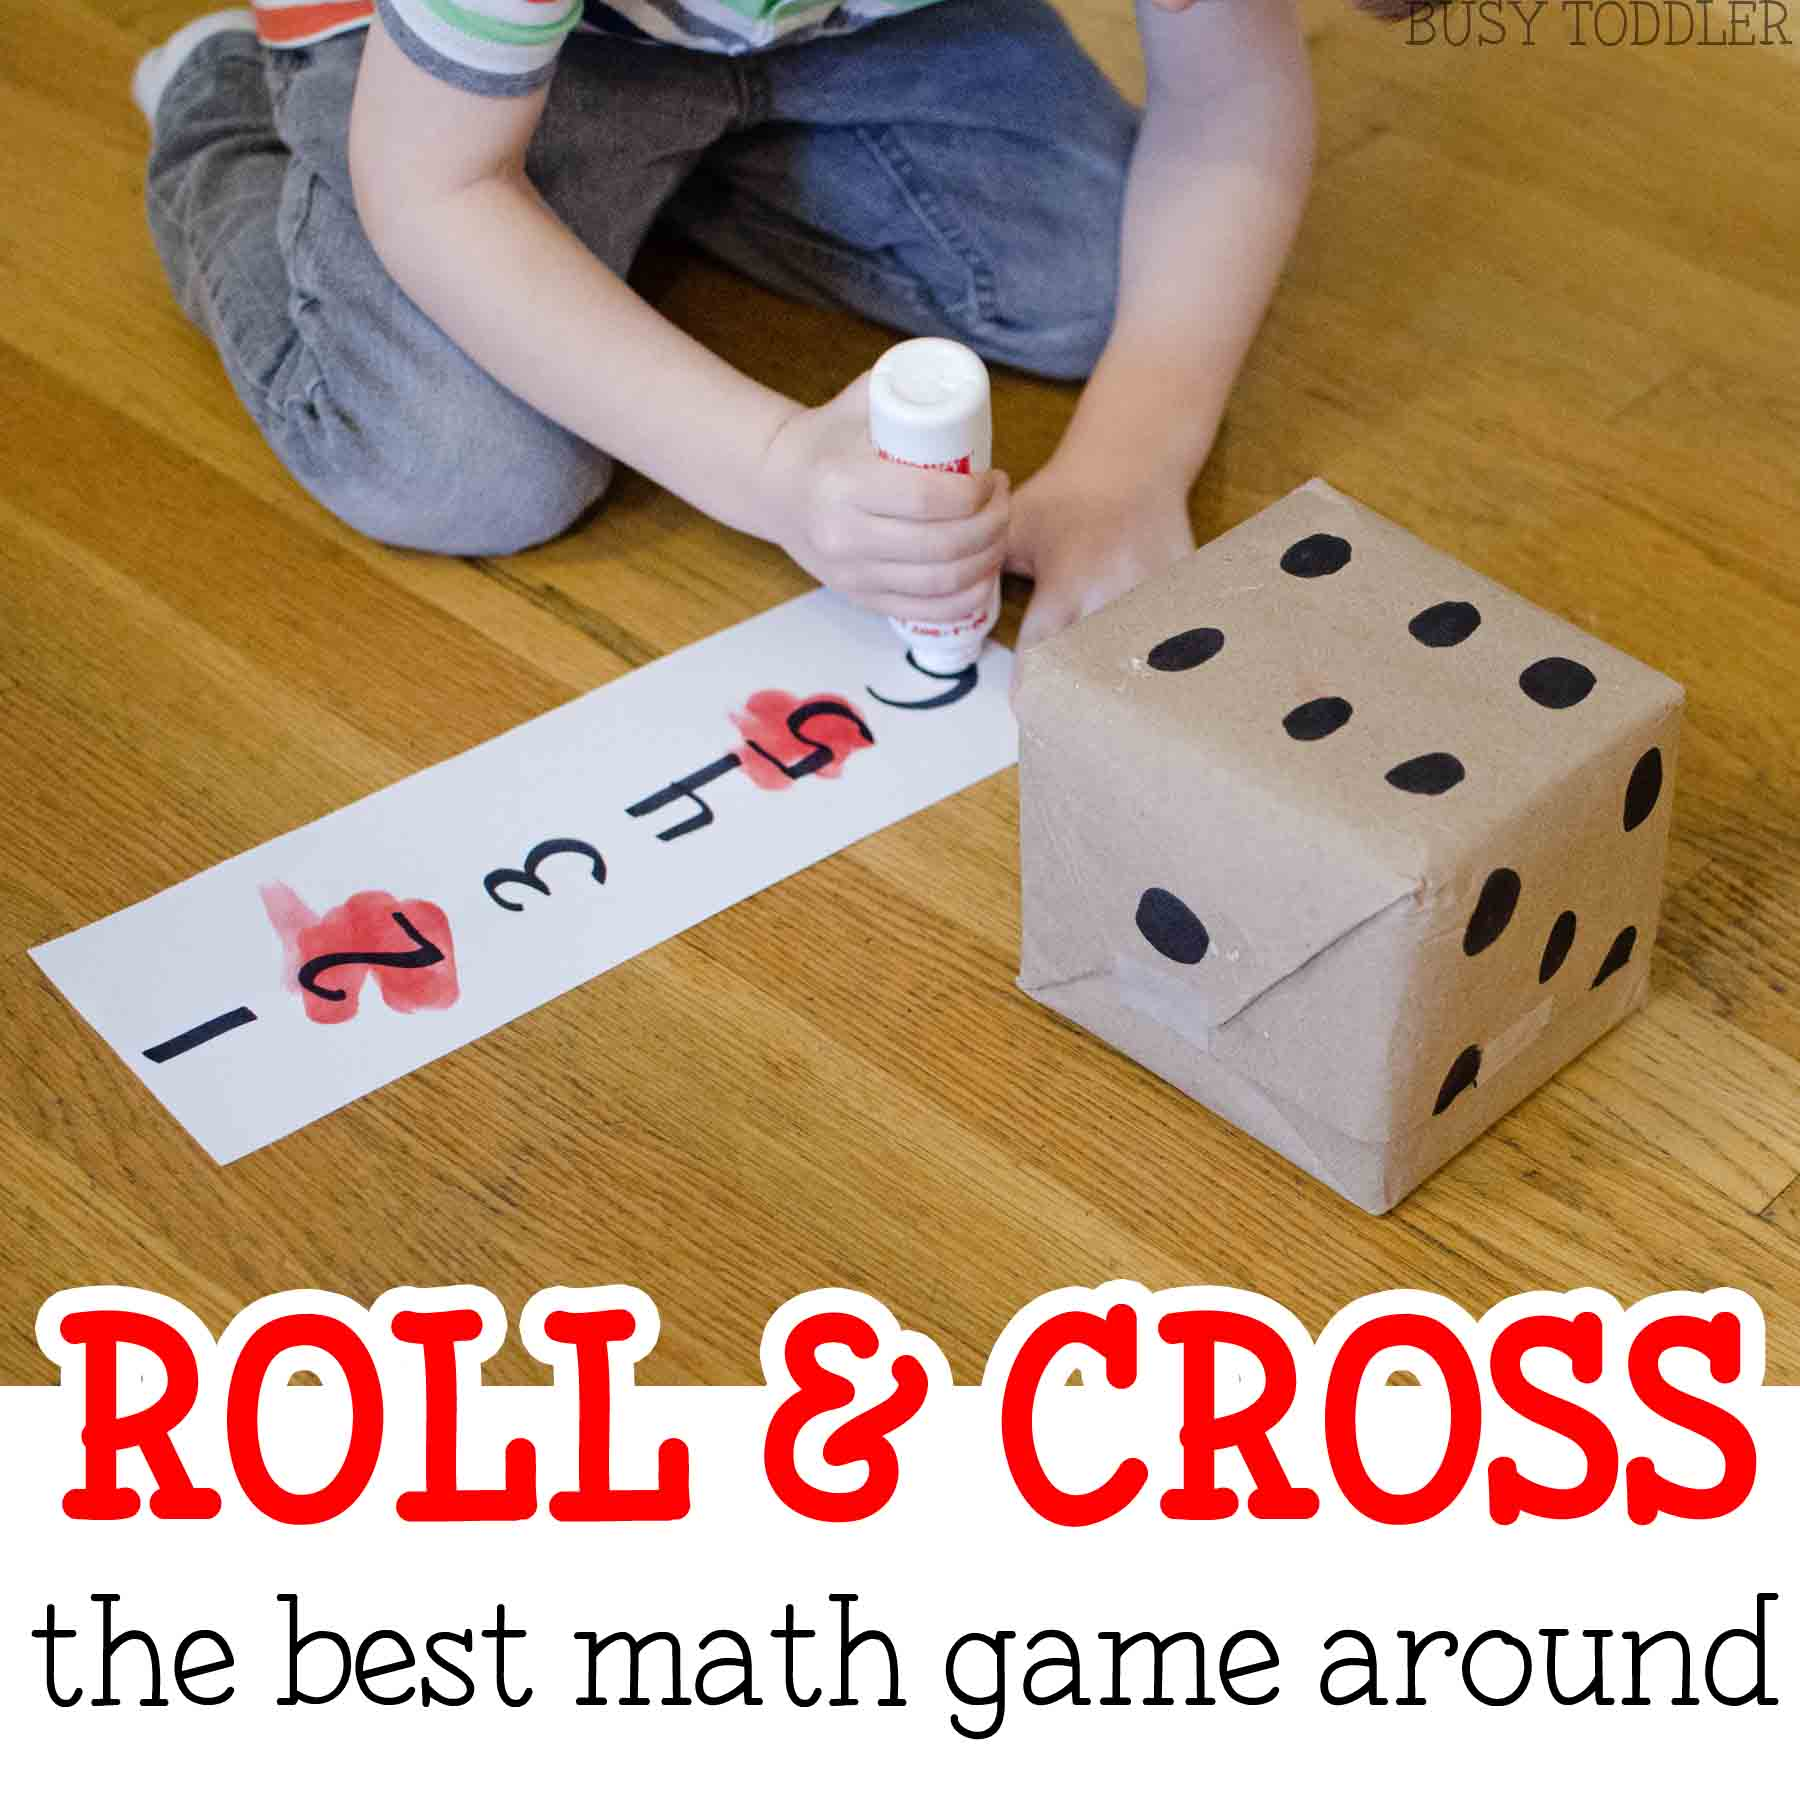 Roll & Cross Math Game Busy Toddler